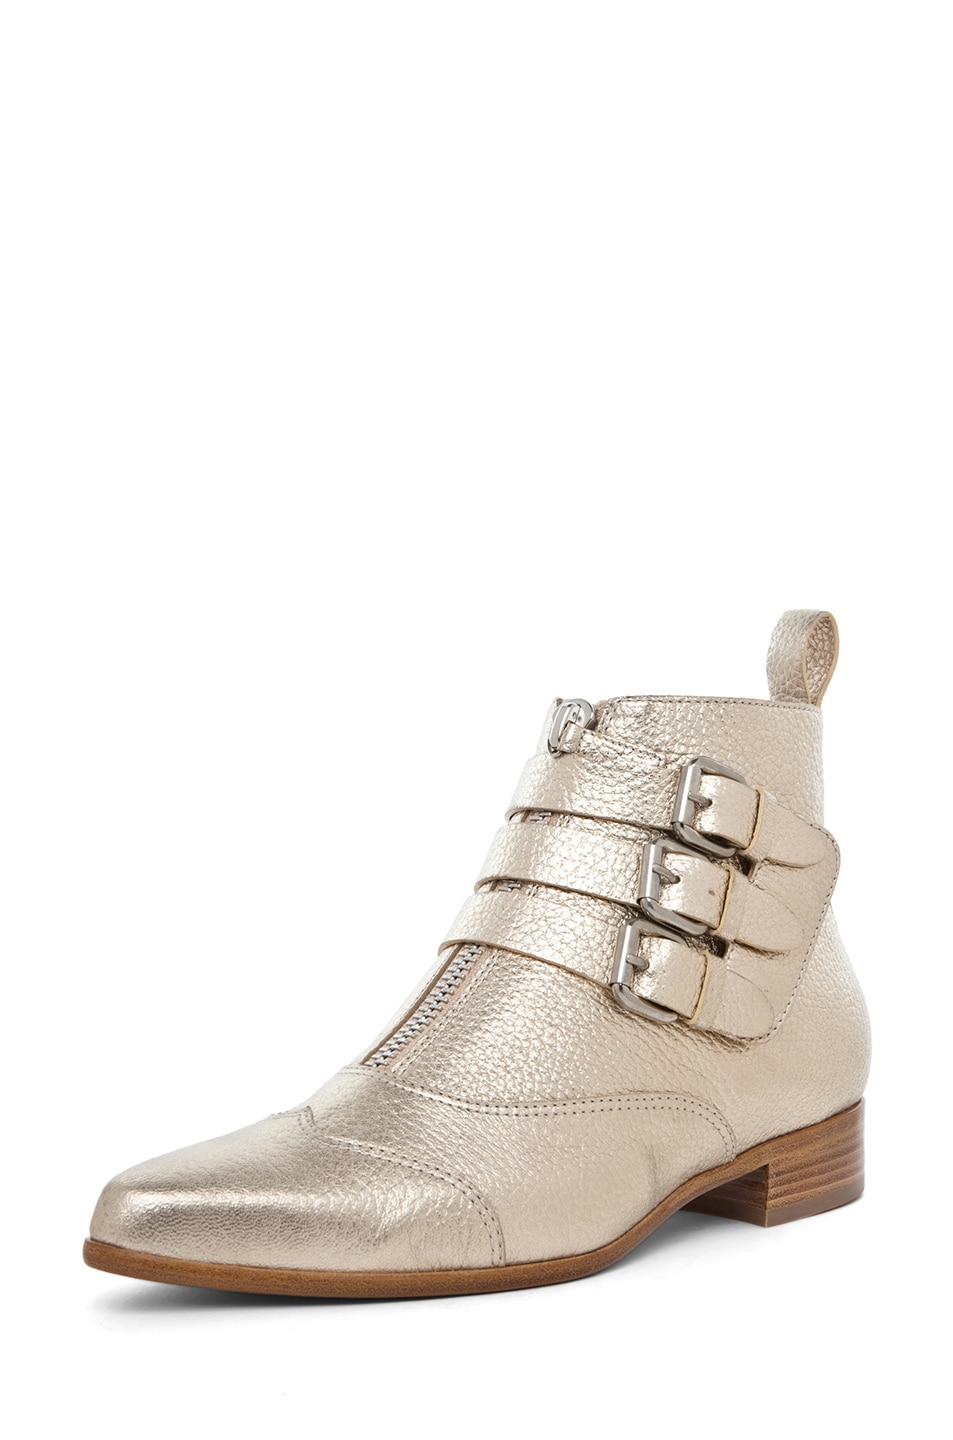 Image 2 of Tabitha Simmons Early Pebbled Leather Booties in Gold